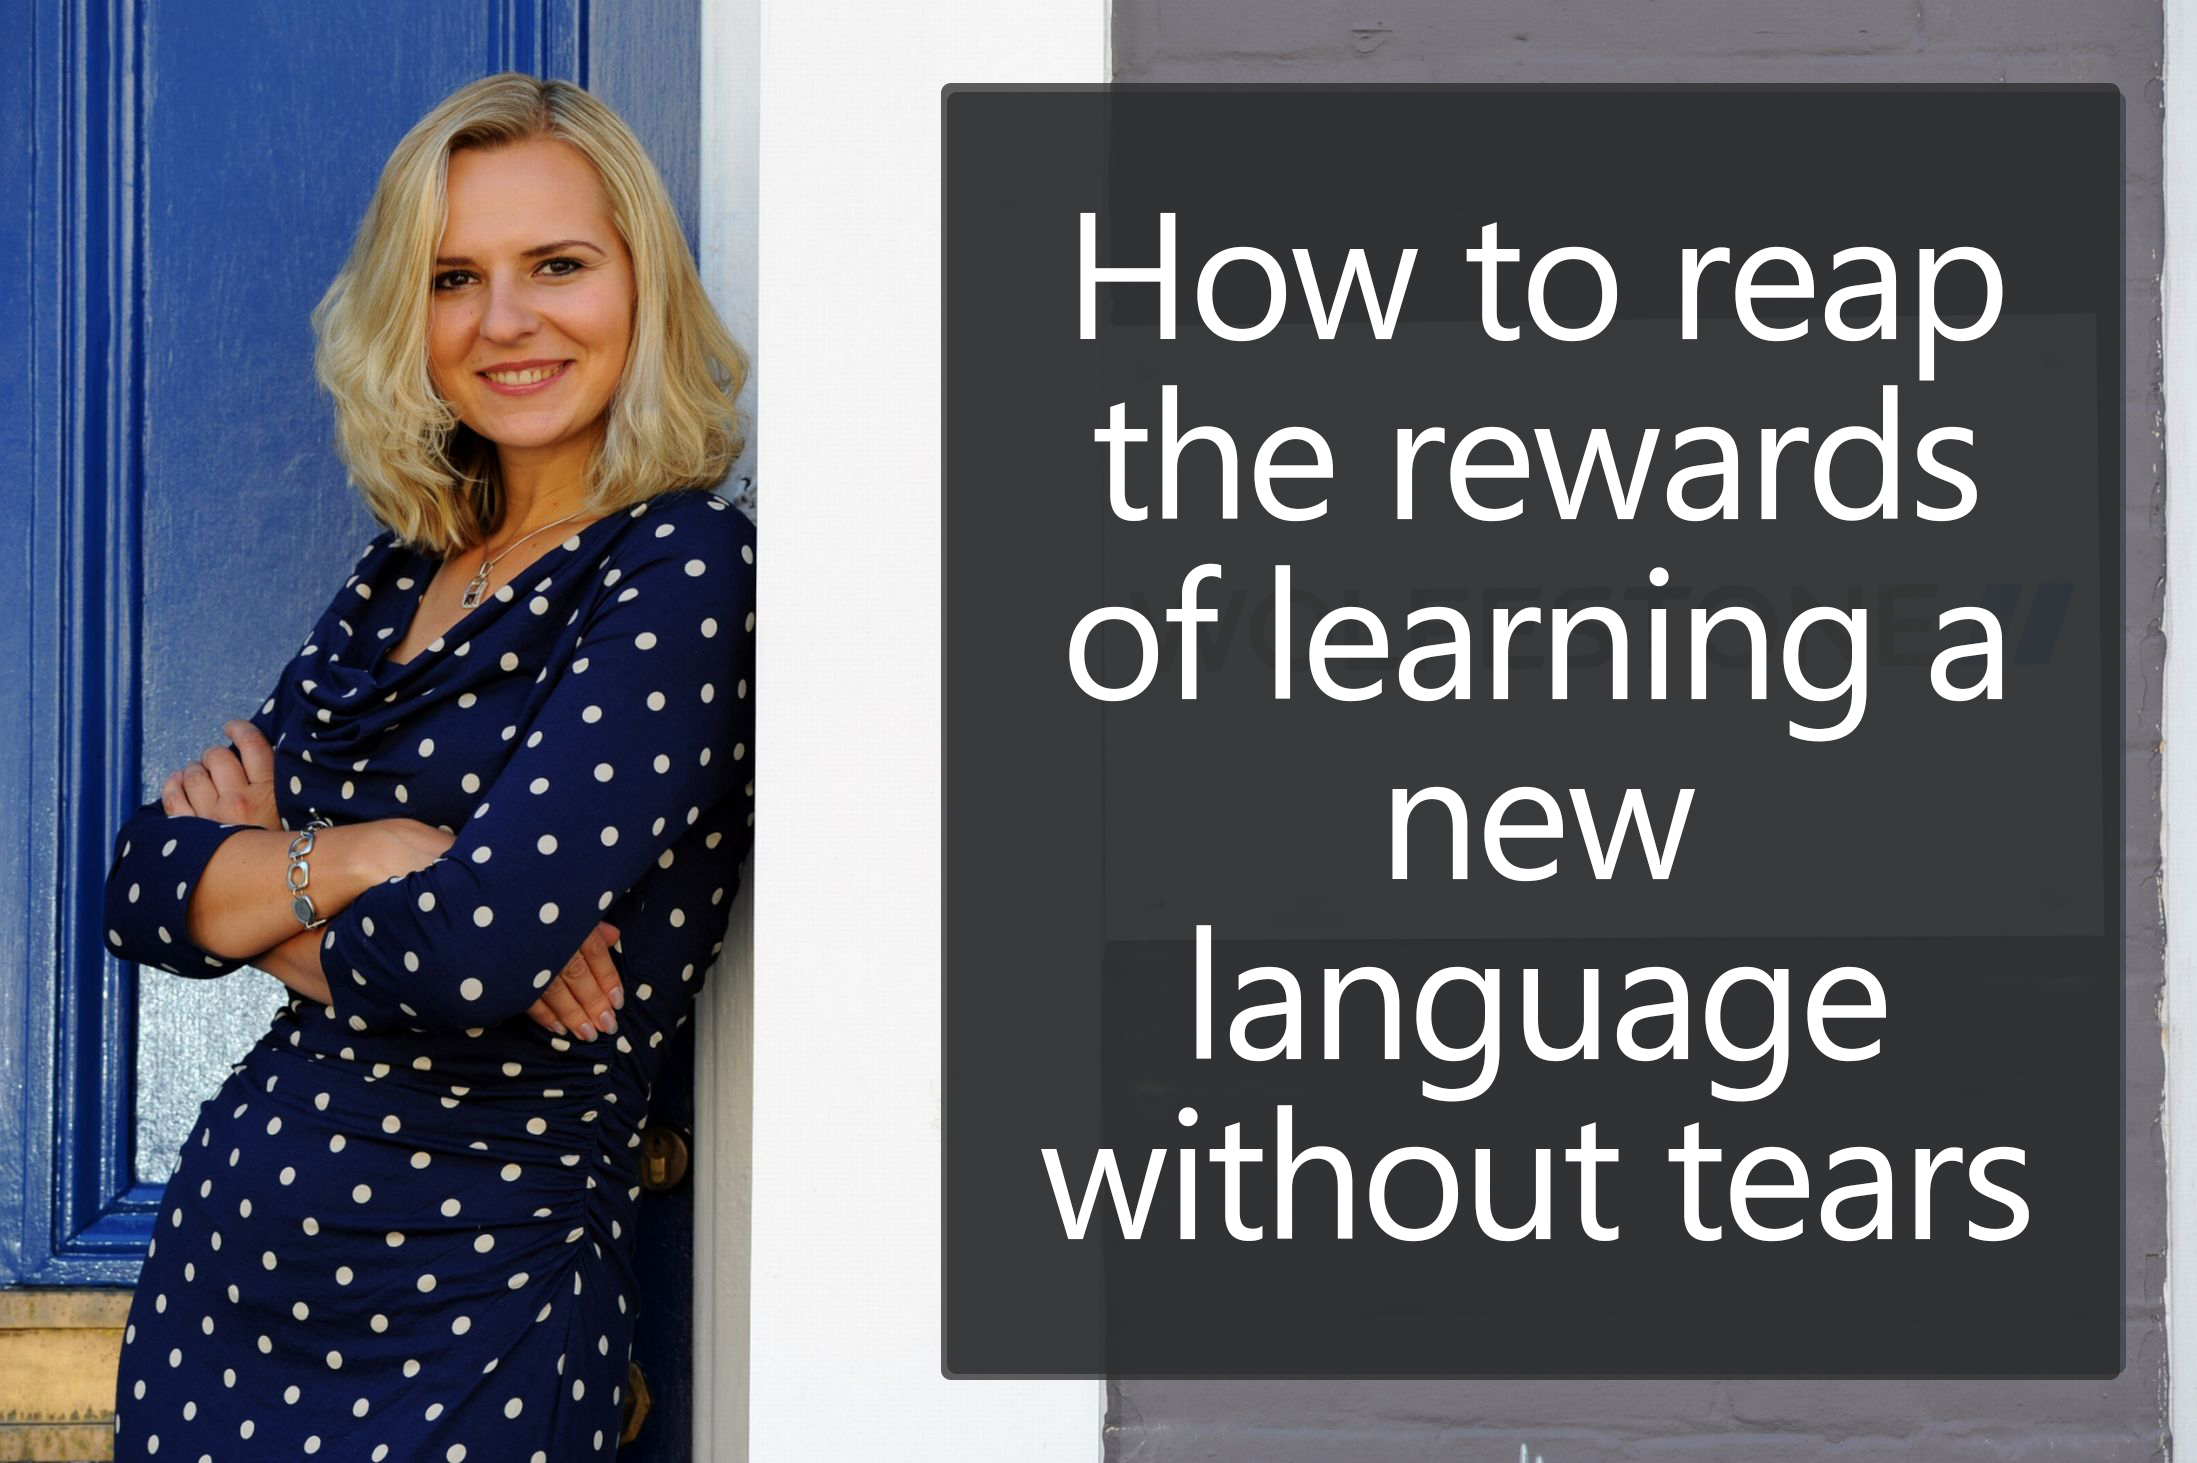 How to reap the rewards of learning a new language without tears